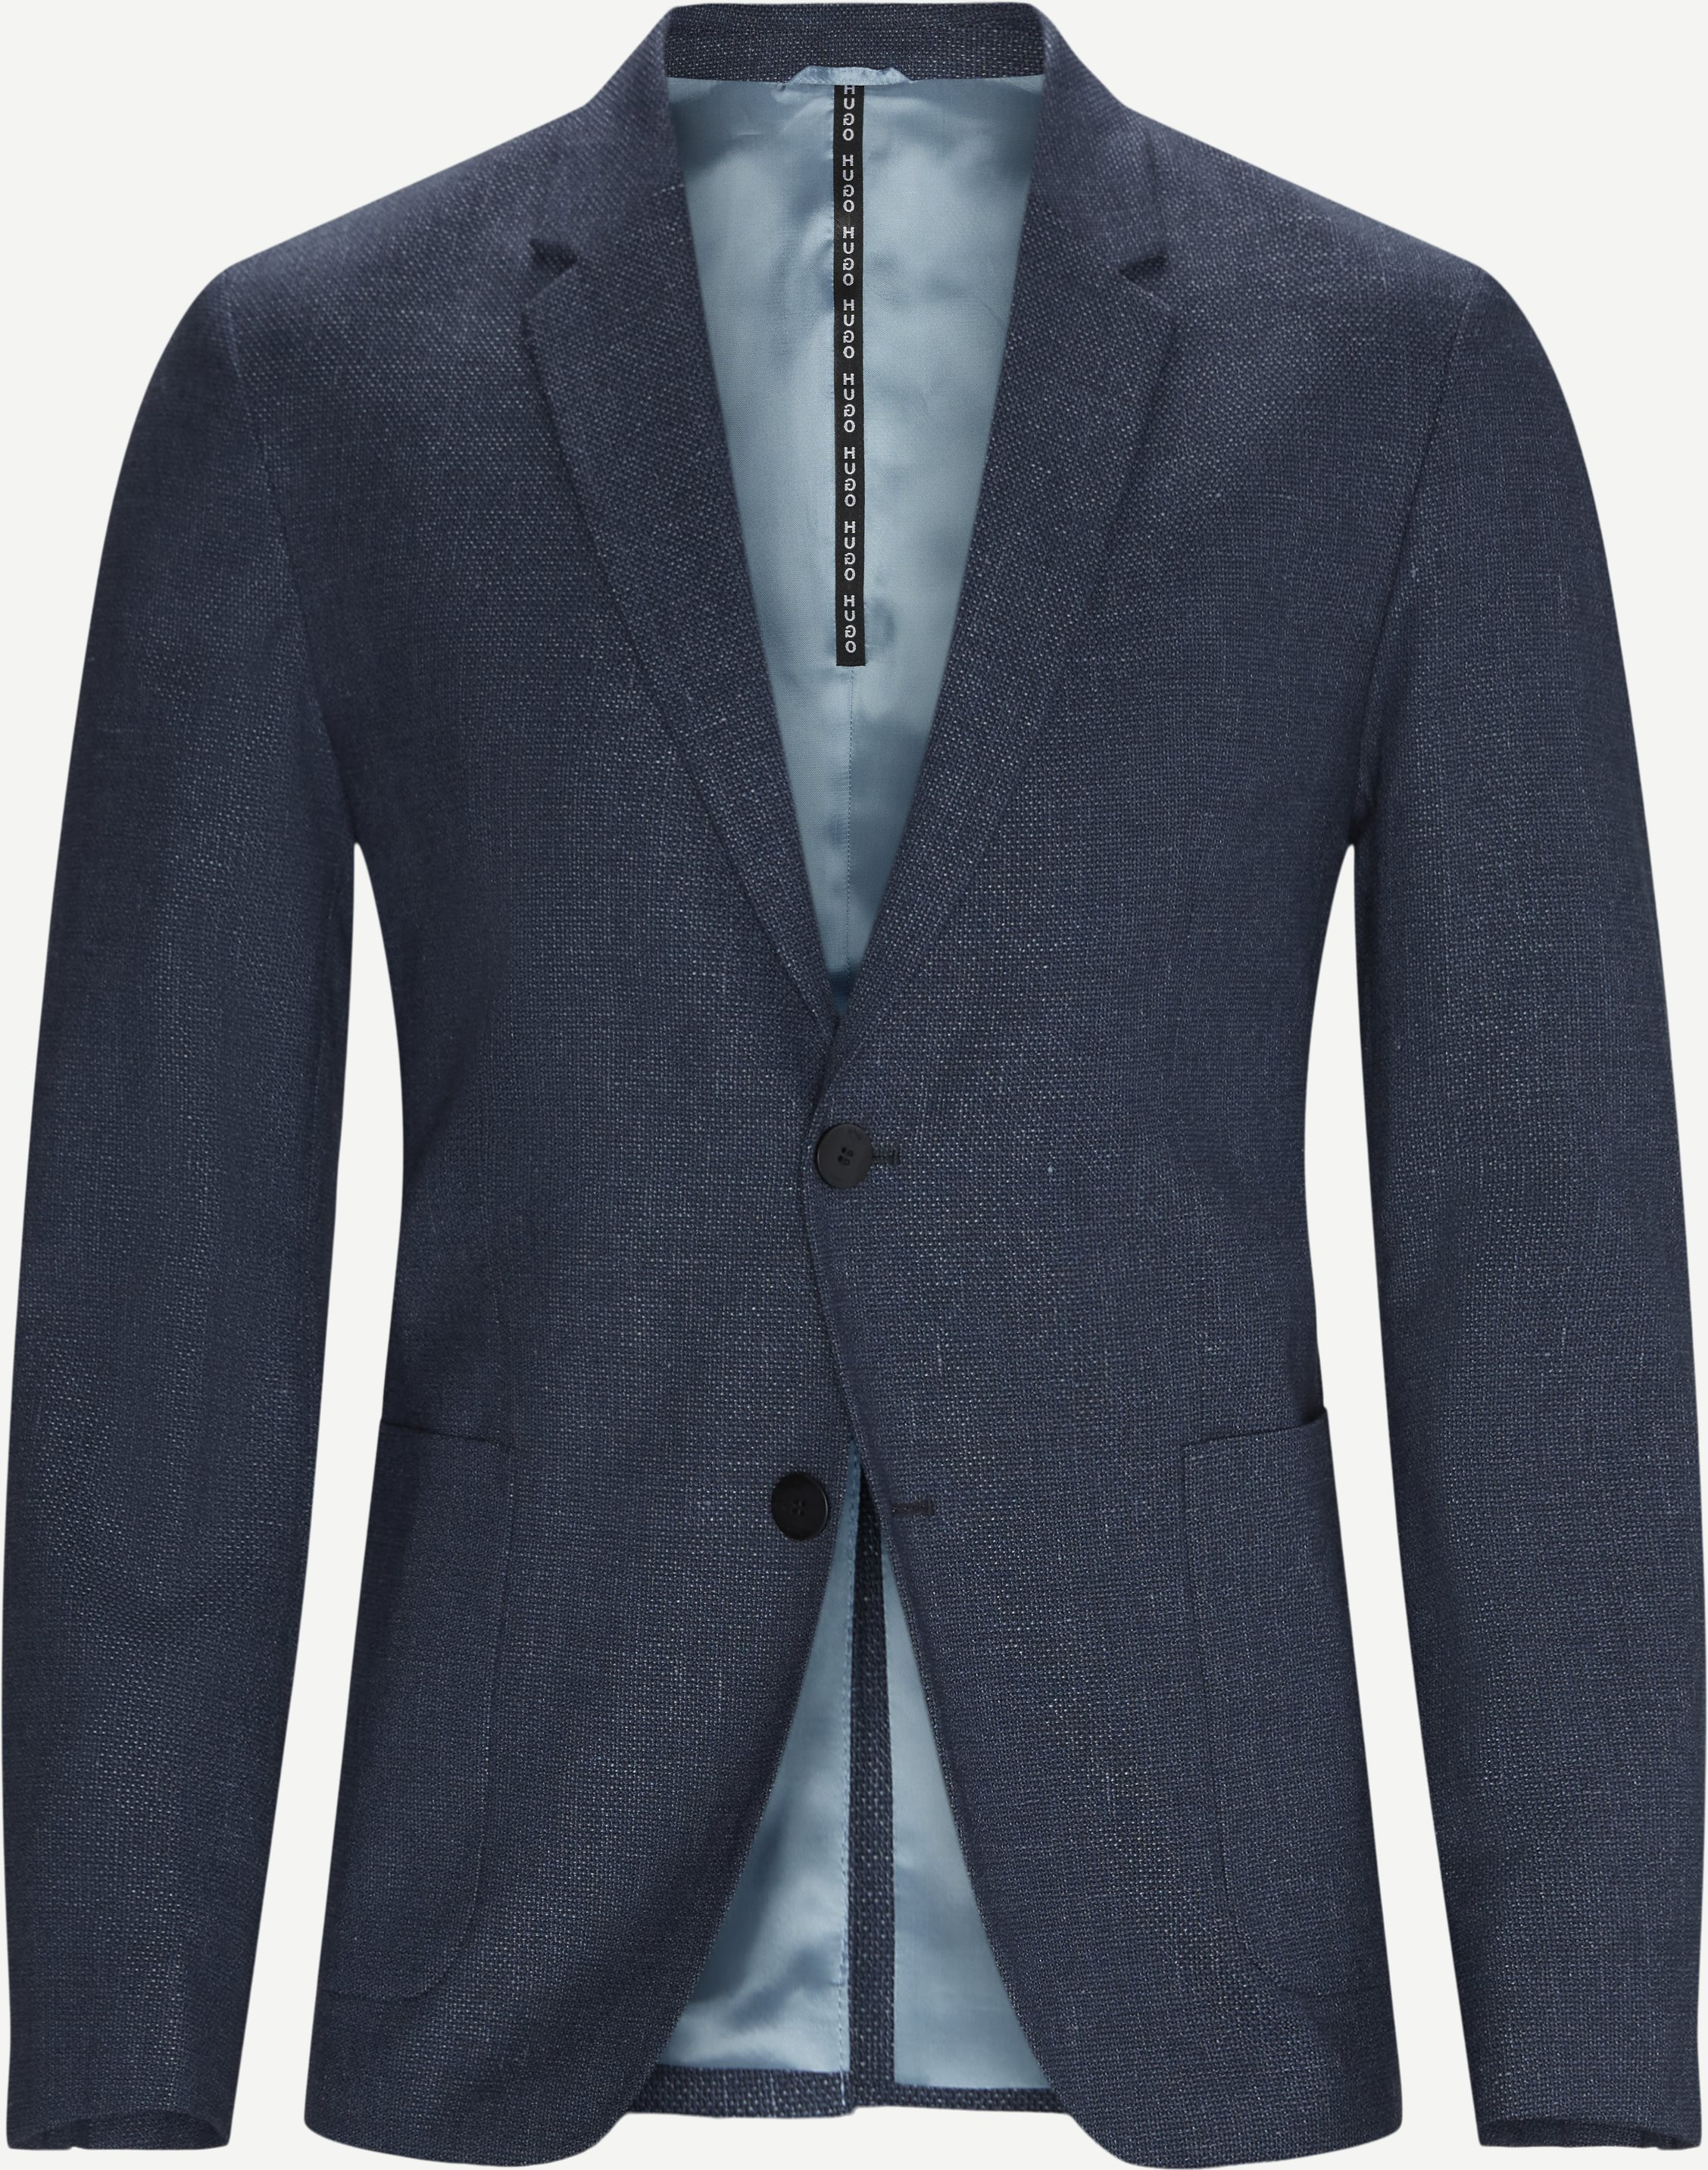 Blazer - Slim fit - Blau